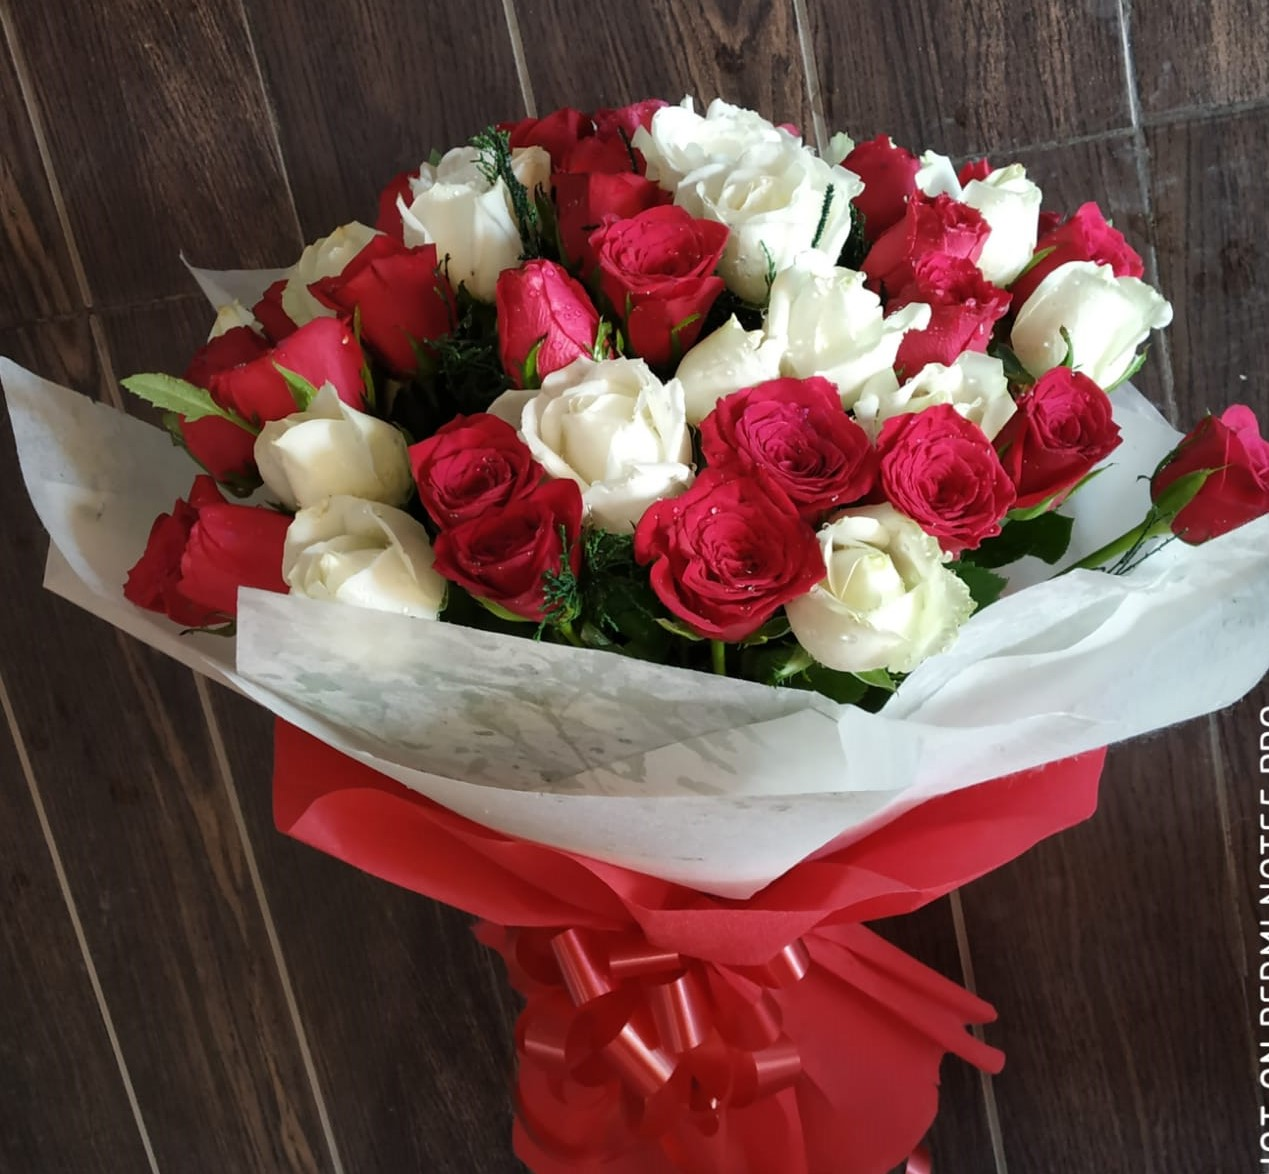 Flowers Delivery in Sector 47 GurgaonRed & White Roses in Duble Layer Packing